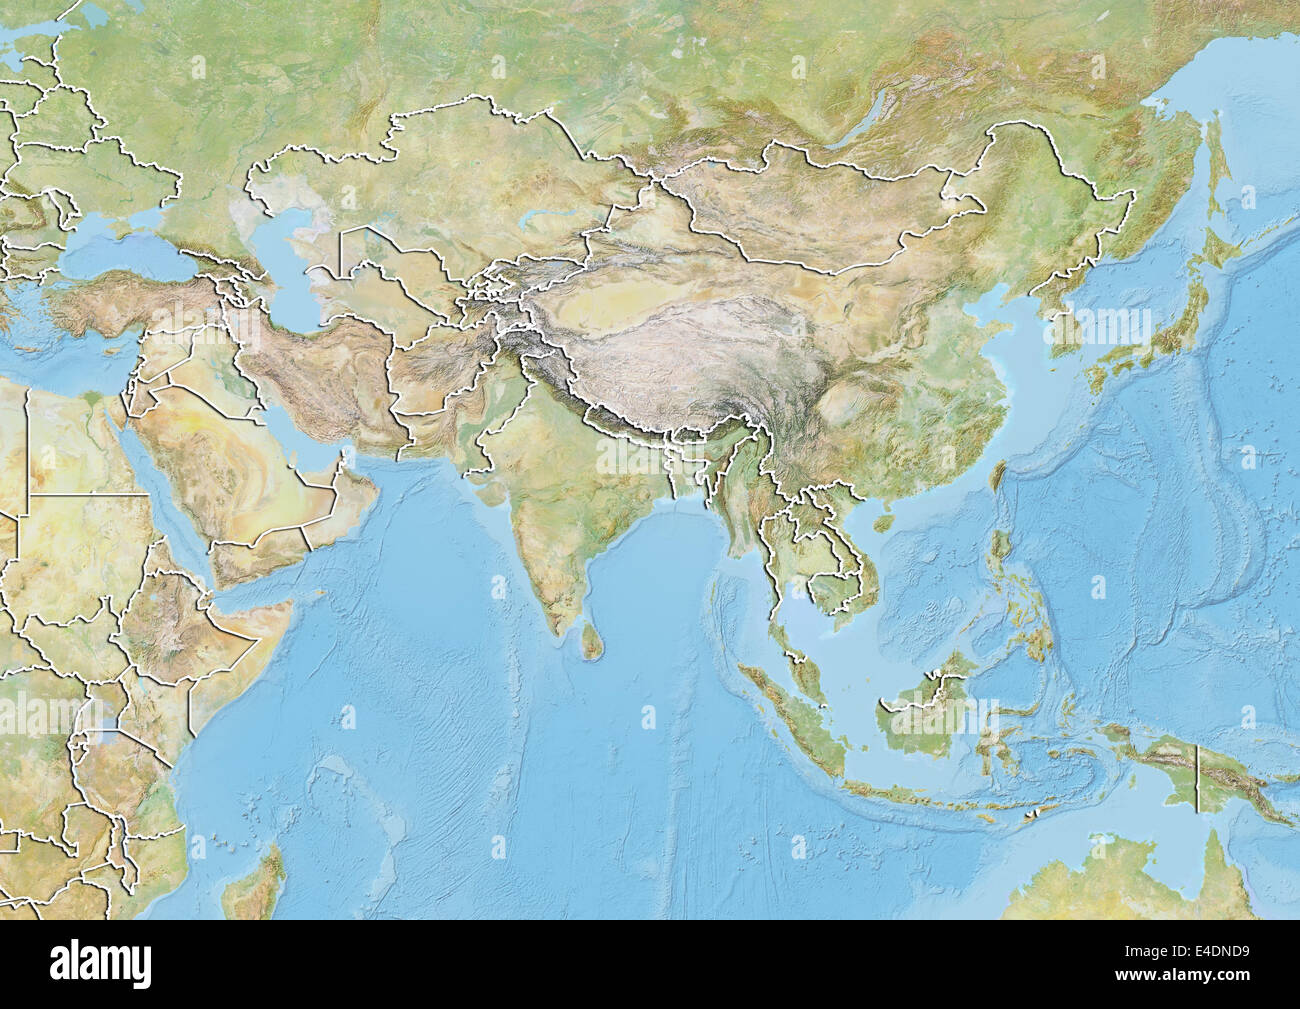 Topographic Map Asia.Asia Relief Map With Country Borders Stock Photo 71602309 Alamy